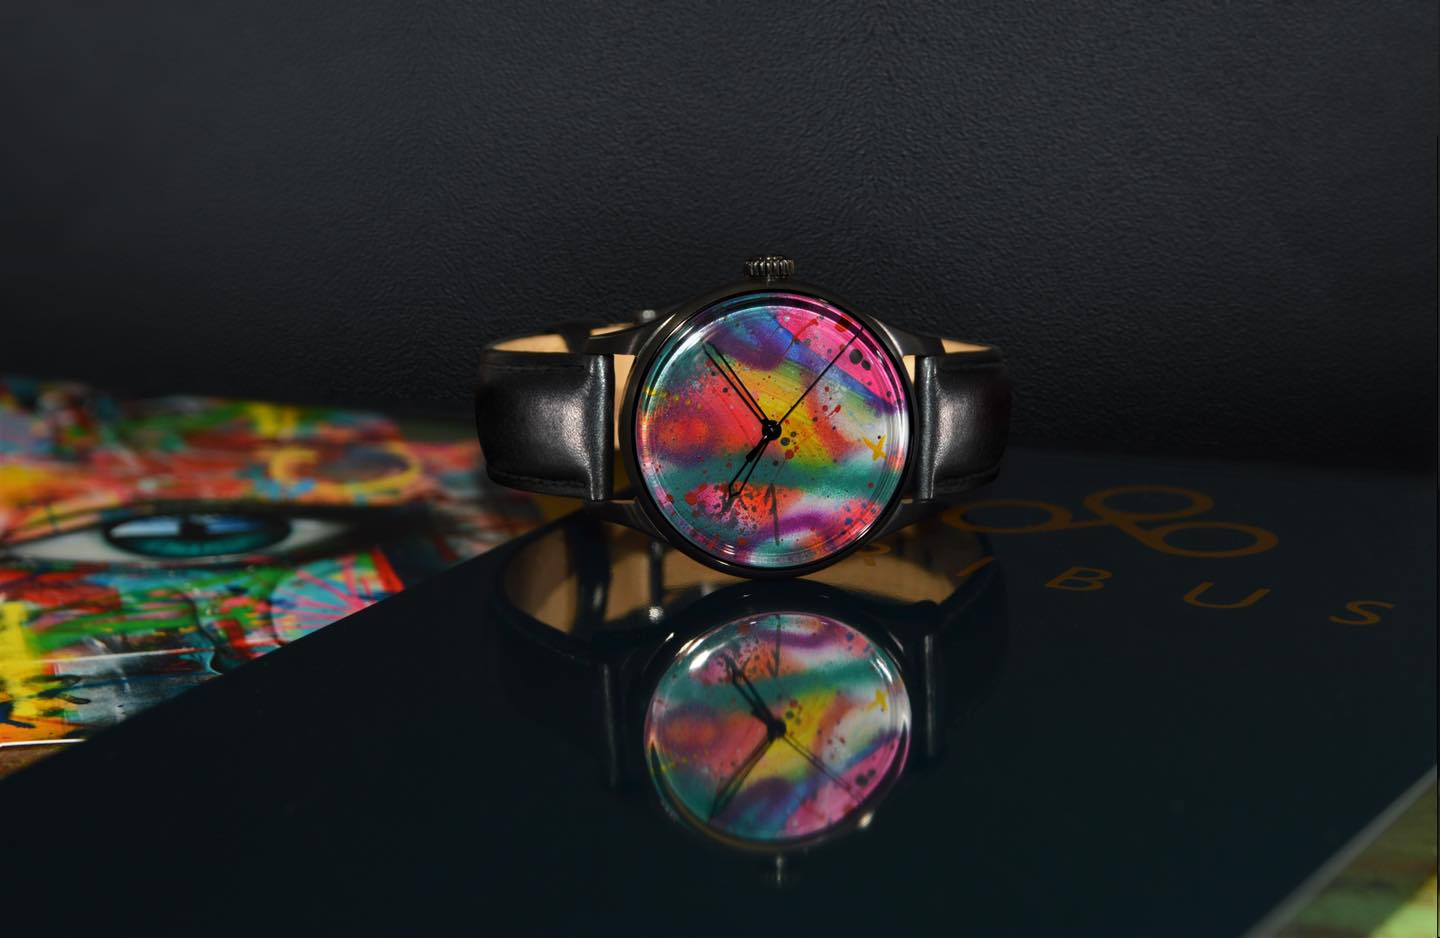 My Dog Sighs launches his range of hand finished watches with luxury brand Tribus